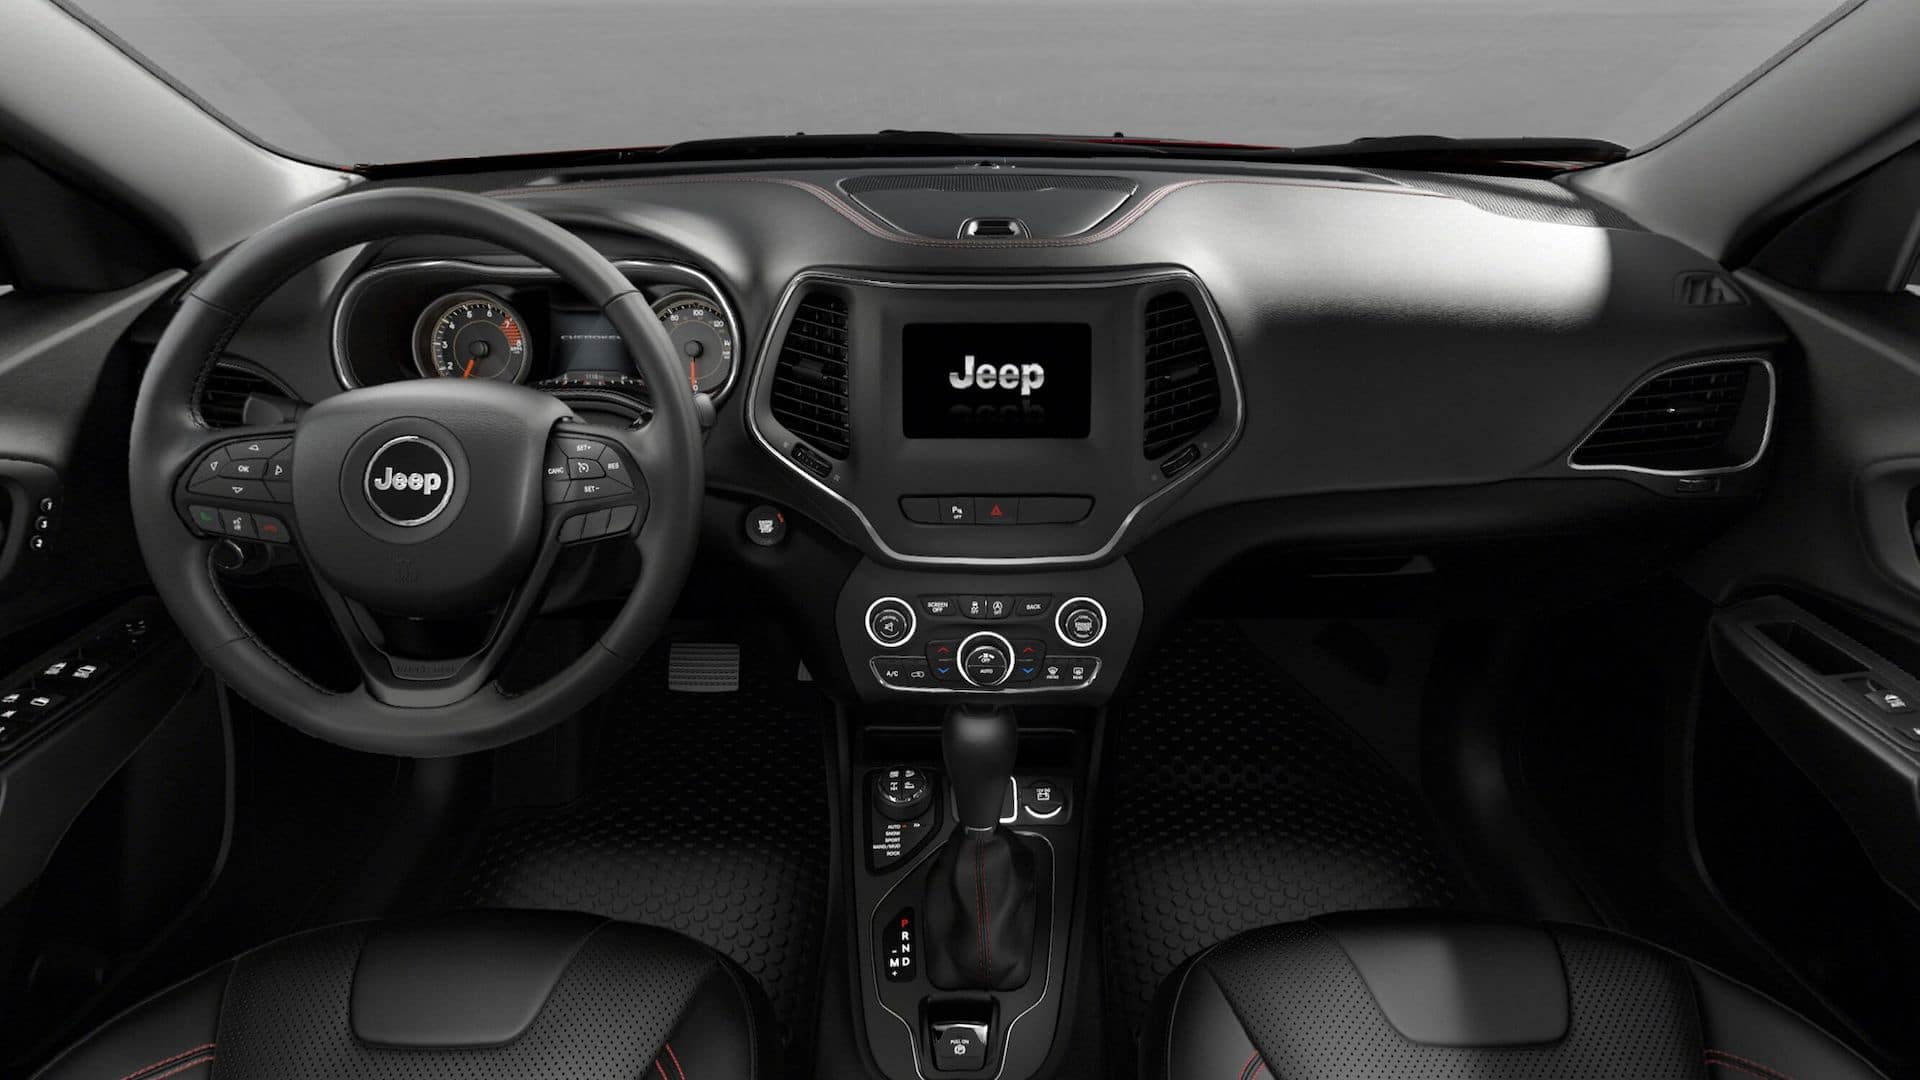 https://di-uploads-pod11.dealerinspire.com/machaikdodgechryslerjeepram1/uploads/2018/03/2019-jeep-cherokee-interior.jpg